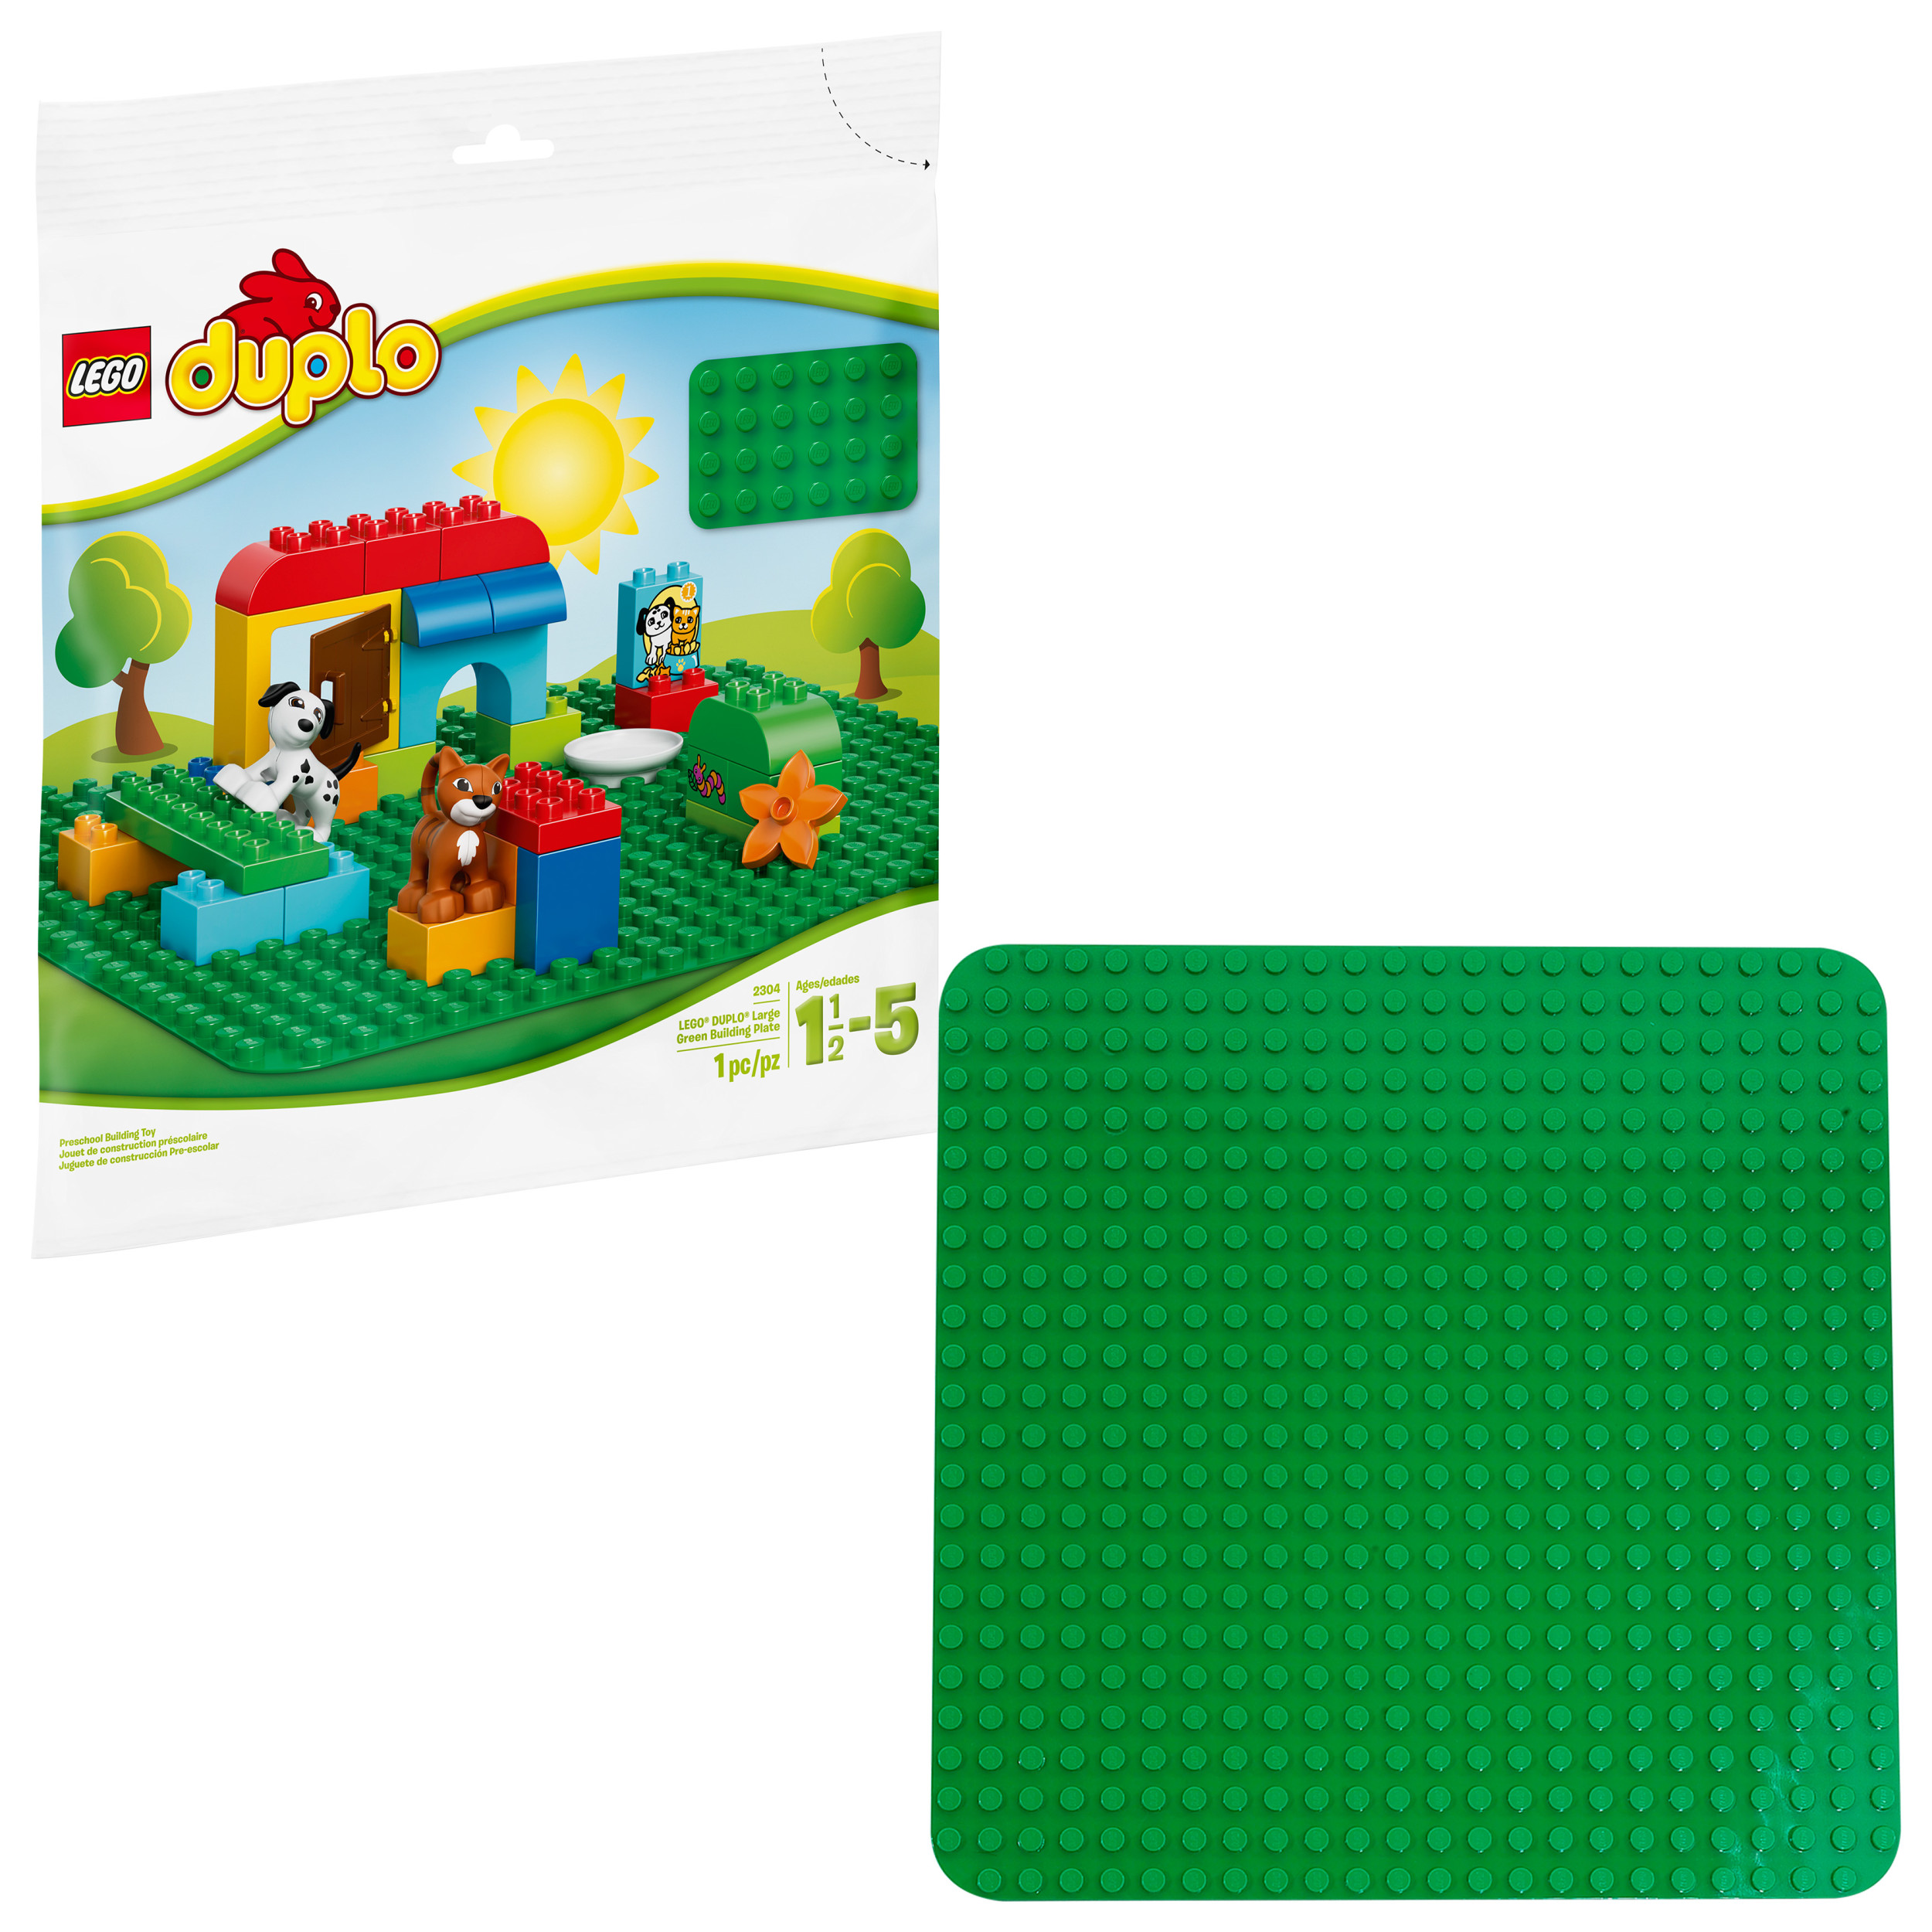 LEGO¨ DUPLO¨ Large Green Building Plate 2304